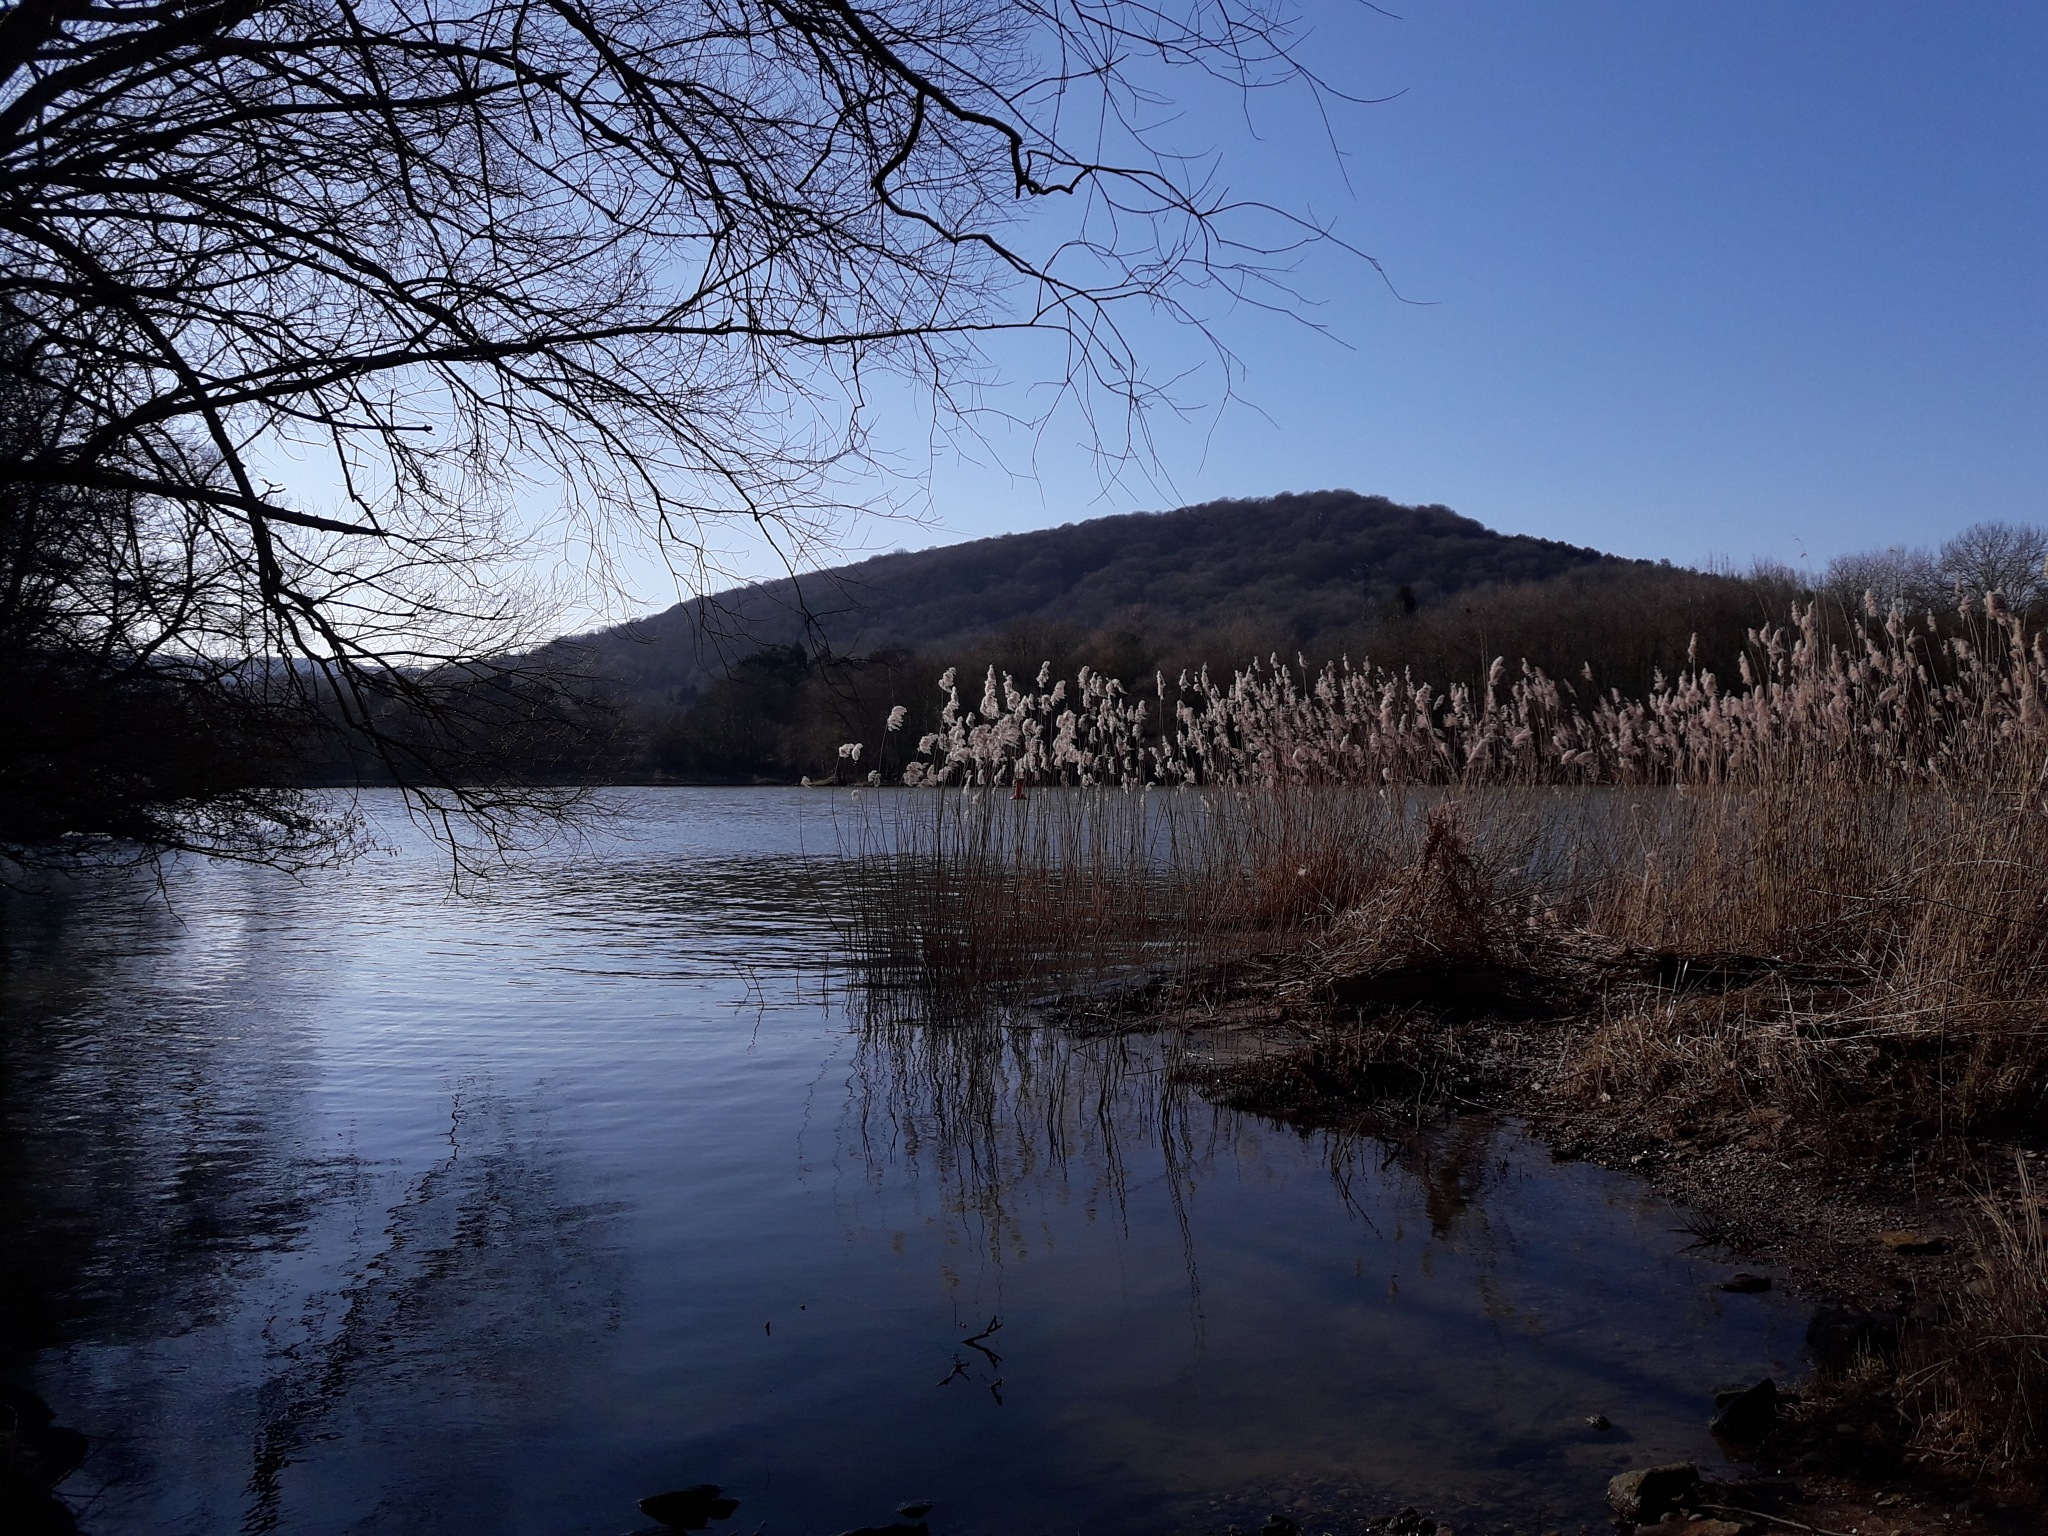 Sunny winter day by the Mosel river by eliette